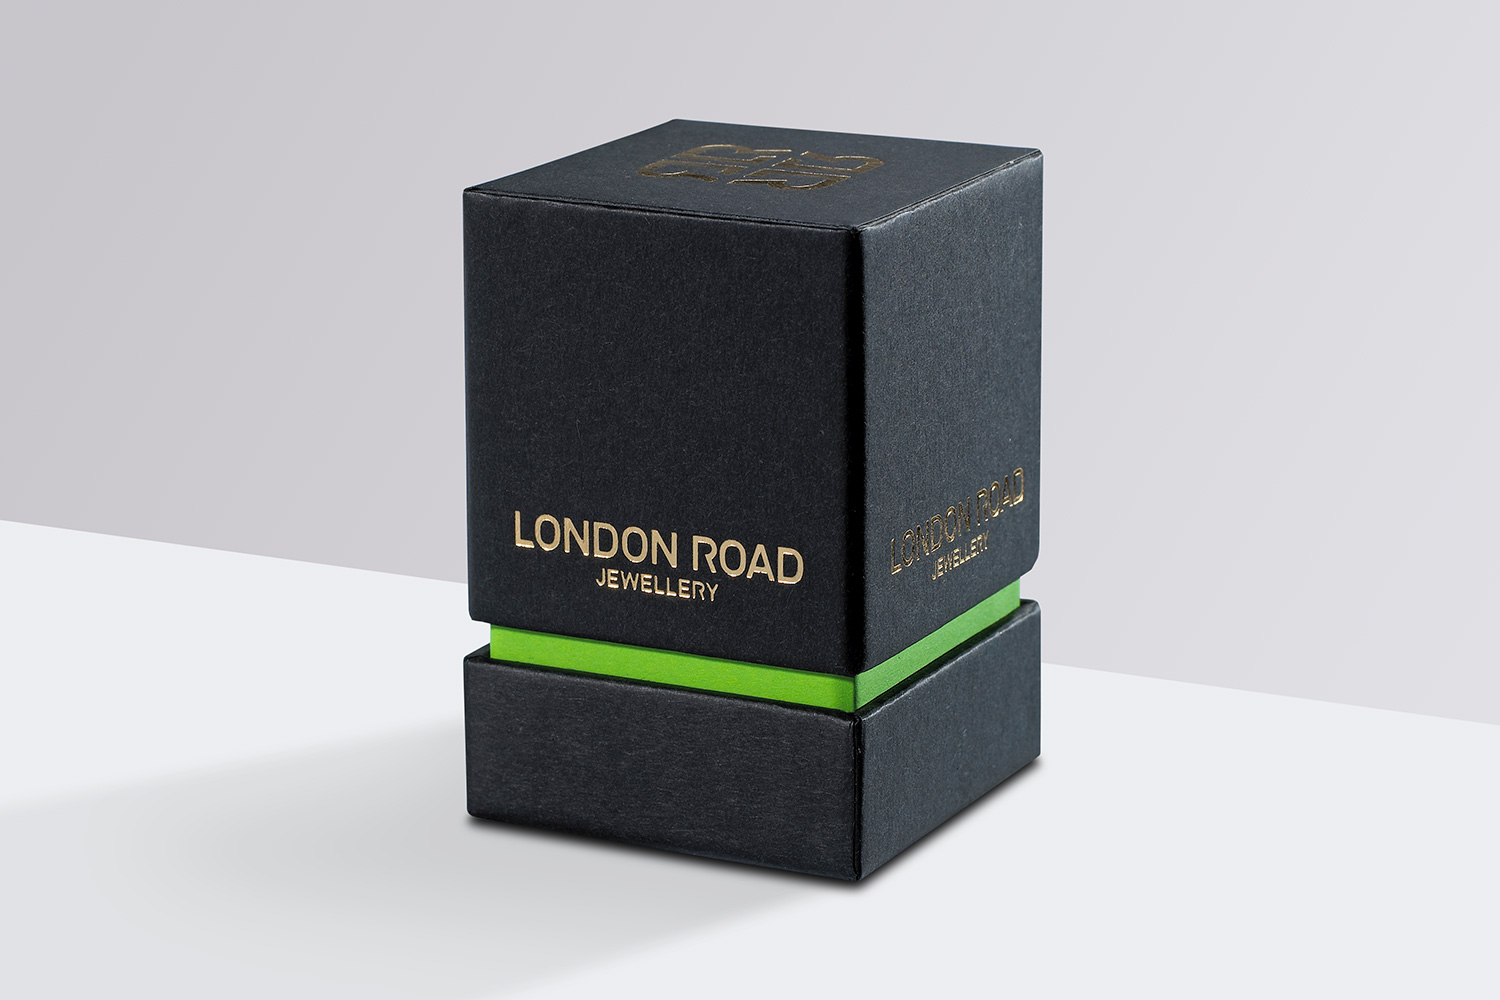 Progress Packaging London Road SEA Creative Jewellery Box Foil Block